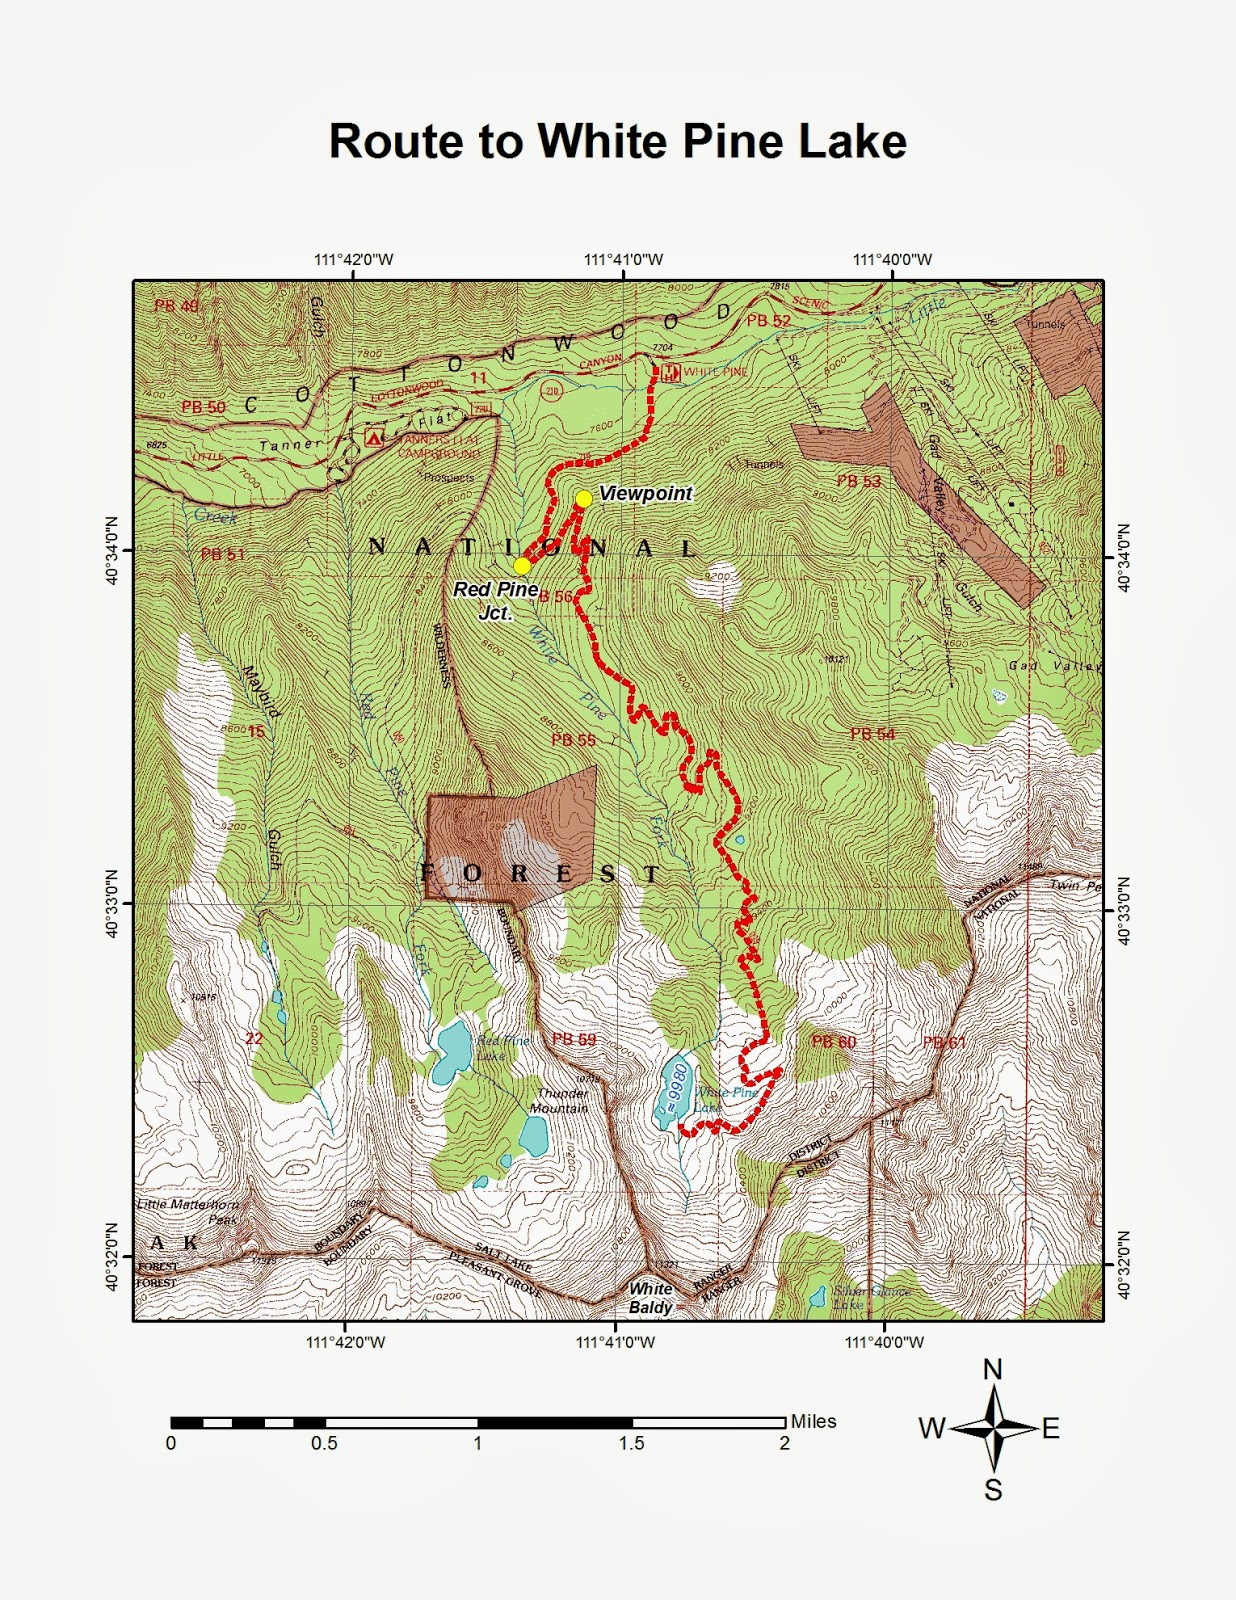 to reach the white pine trailhead from the salt lake valley take the 6200 south exit exit 6 off of i 215 and turn right at the light onto wasatch